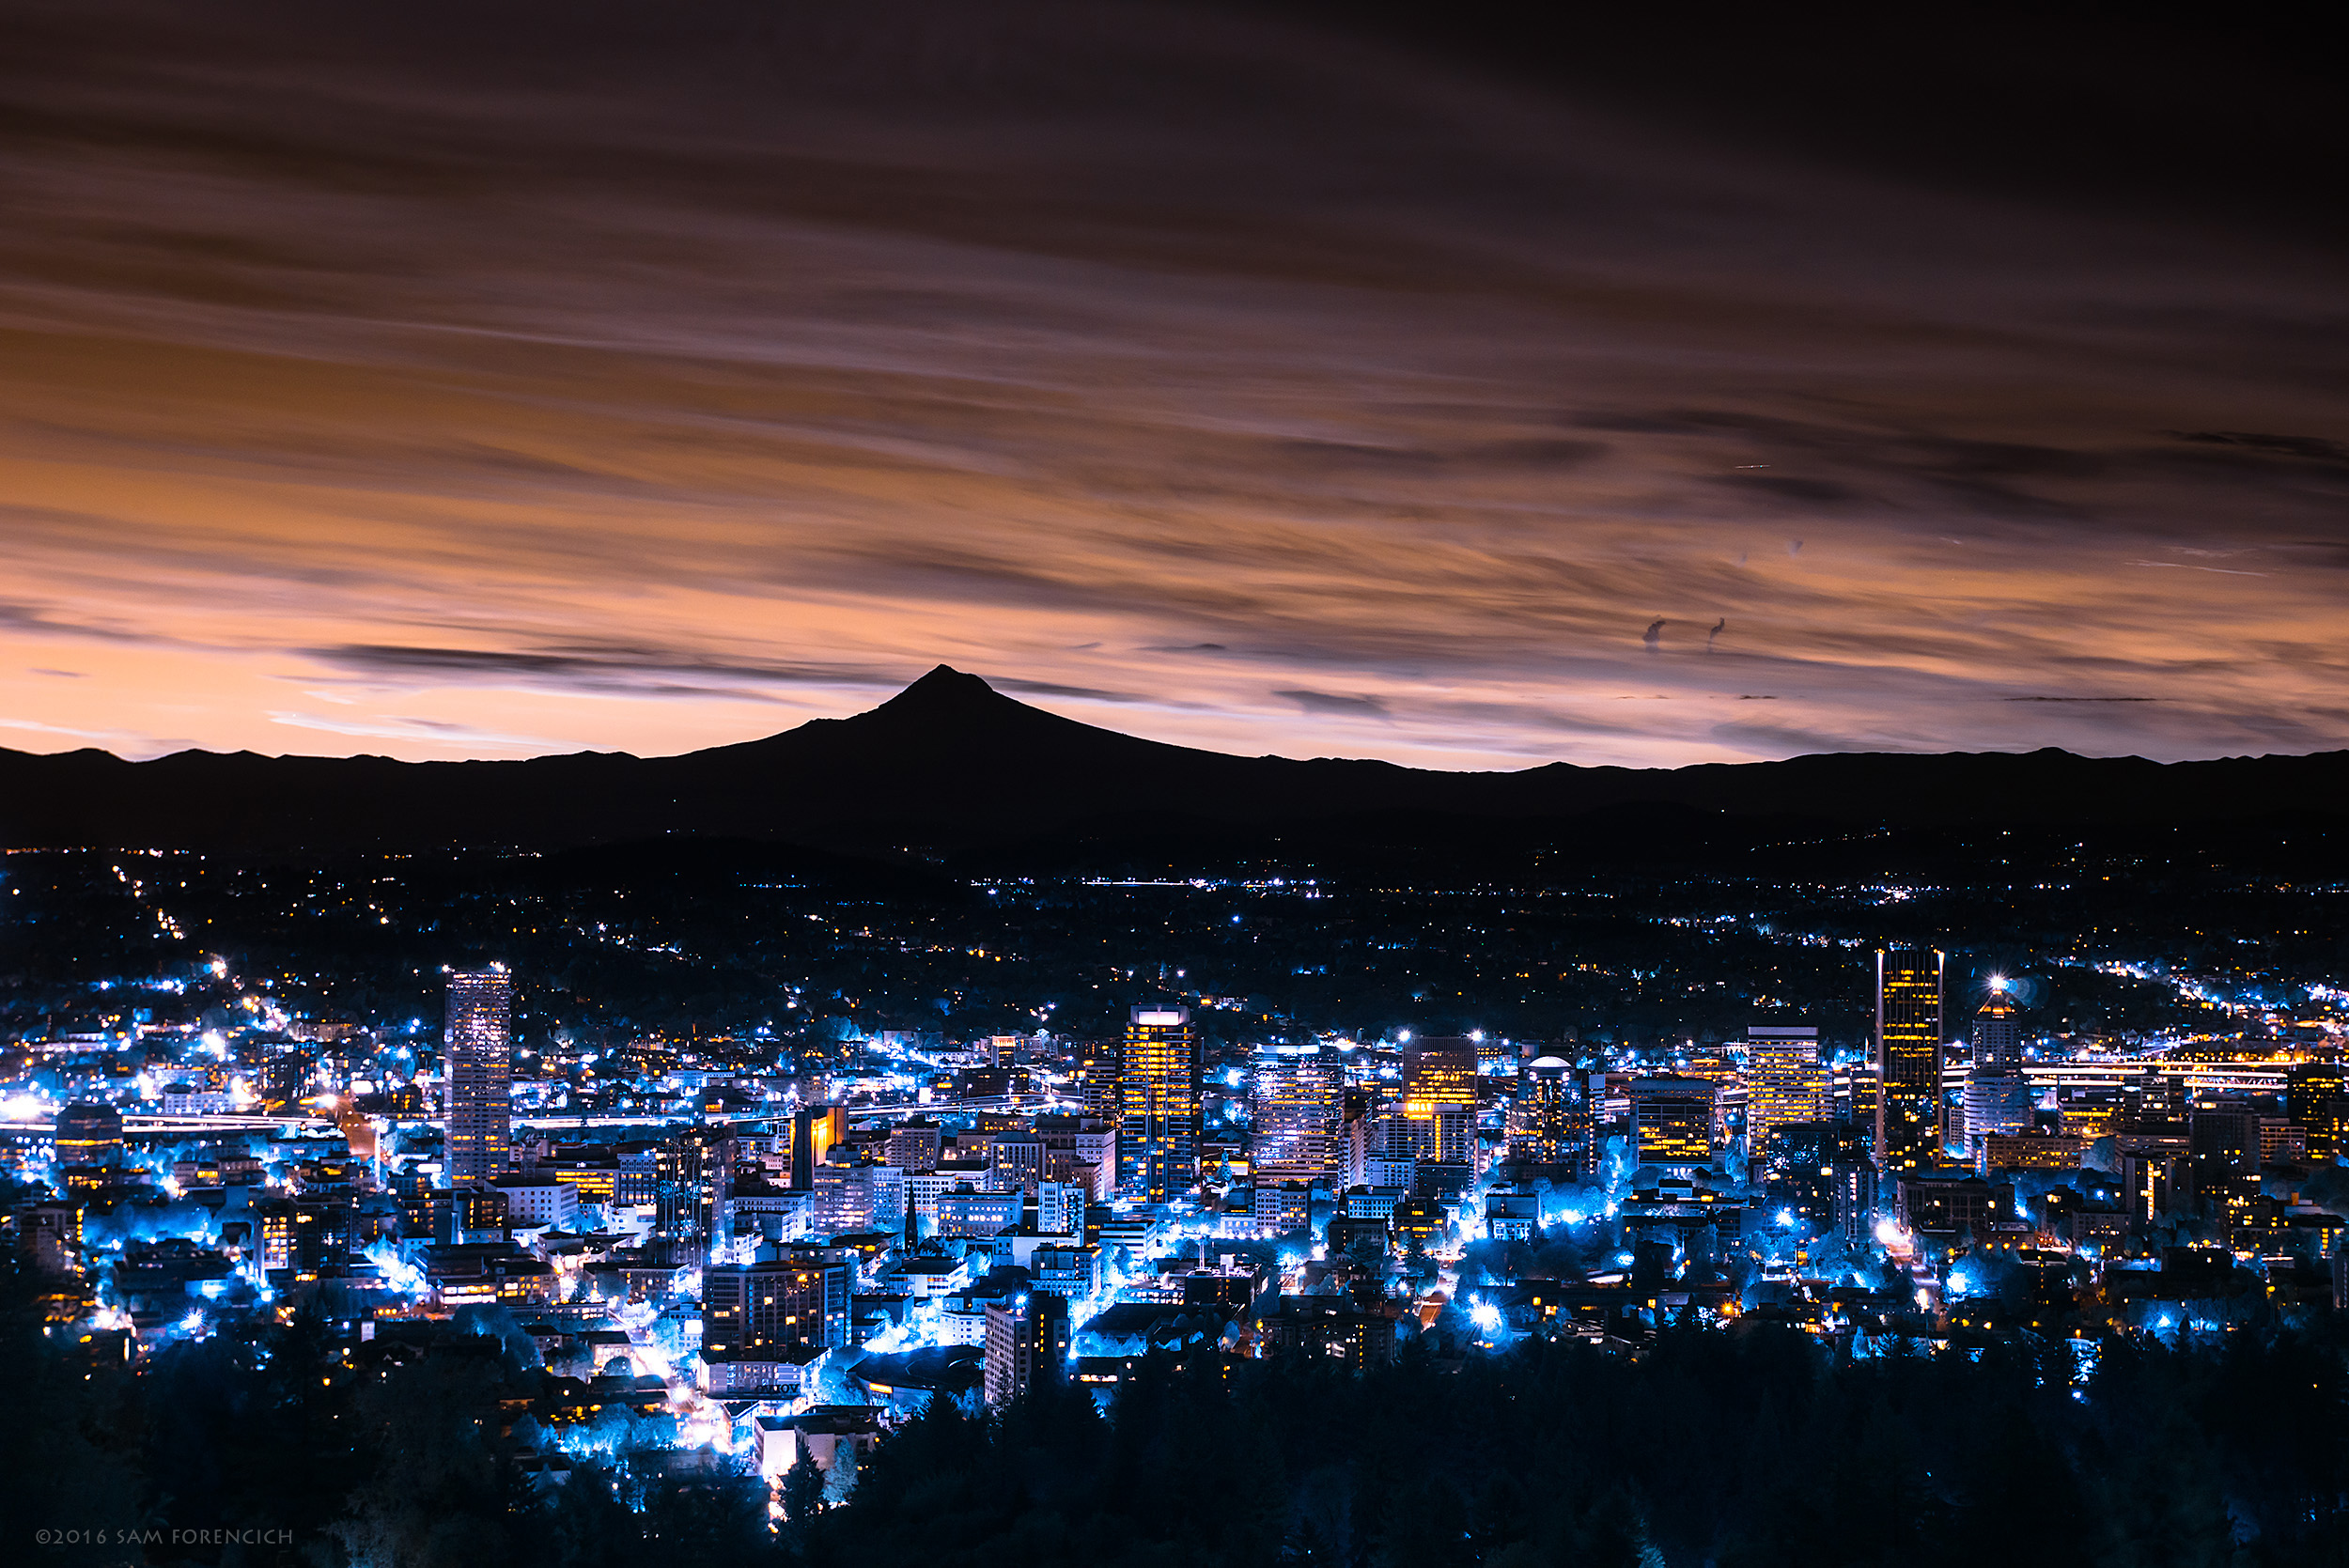 Downtown Portland, Oregon wakes up to the dramatic silhouette of Mt. Hood at sunrise. Still image from Invisible Oregon time-lapse sequence. IR converted Nikon D750. © 2016 Sam Forencich